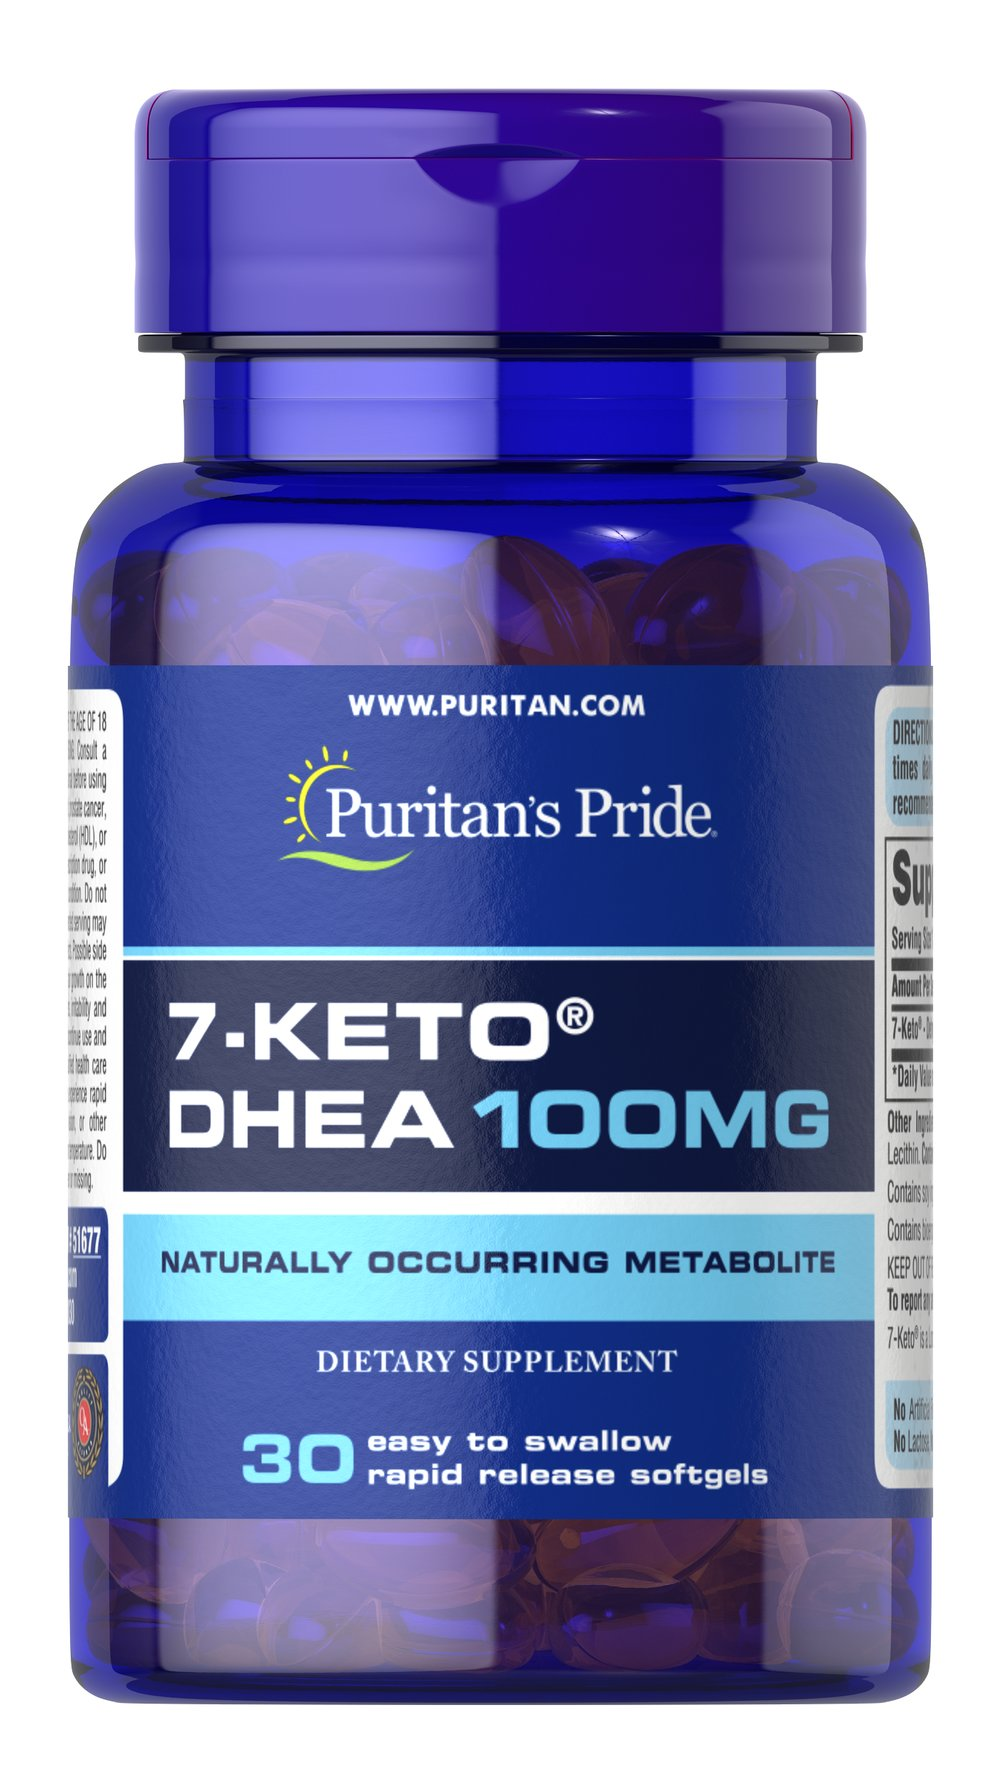 7-Keto® DHEA 100 mg <p>Naturally occurring metabolite.</p><p>100mg of DHEA in one softgel.</p><p>Rapid release.</p><p>7-Keto® is a naturally occurring metabolite of DHEA found in the body.  Levels of DHEA may decline with age, and 7-Keto® provides you with DHEA in an easy to swallow softgel. One serving of this dietary supplement provides 100mg of DHEA. Includes 30 rapid release softgels.</p> 30 Softgels 100 mg $28.79